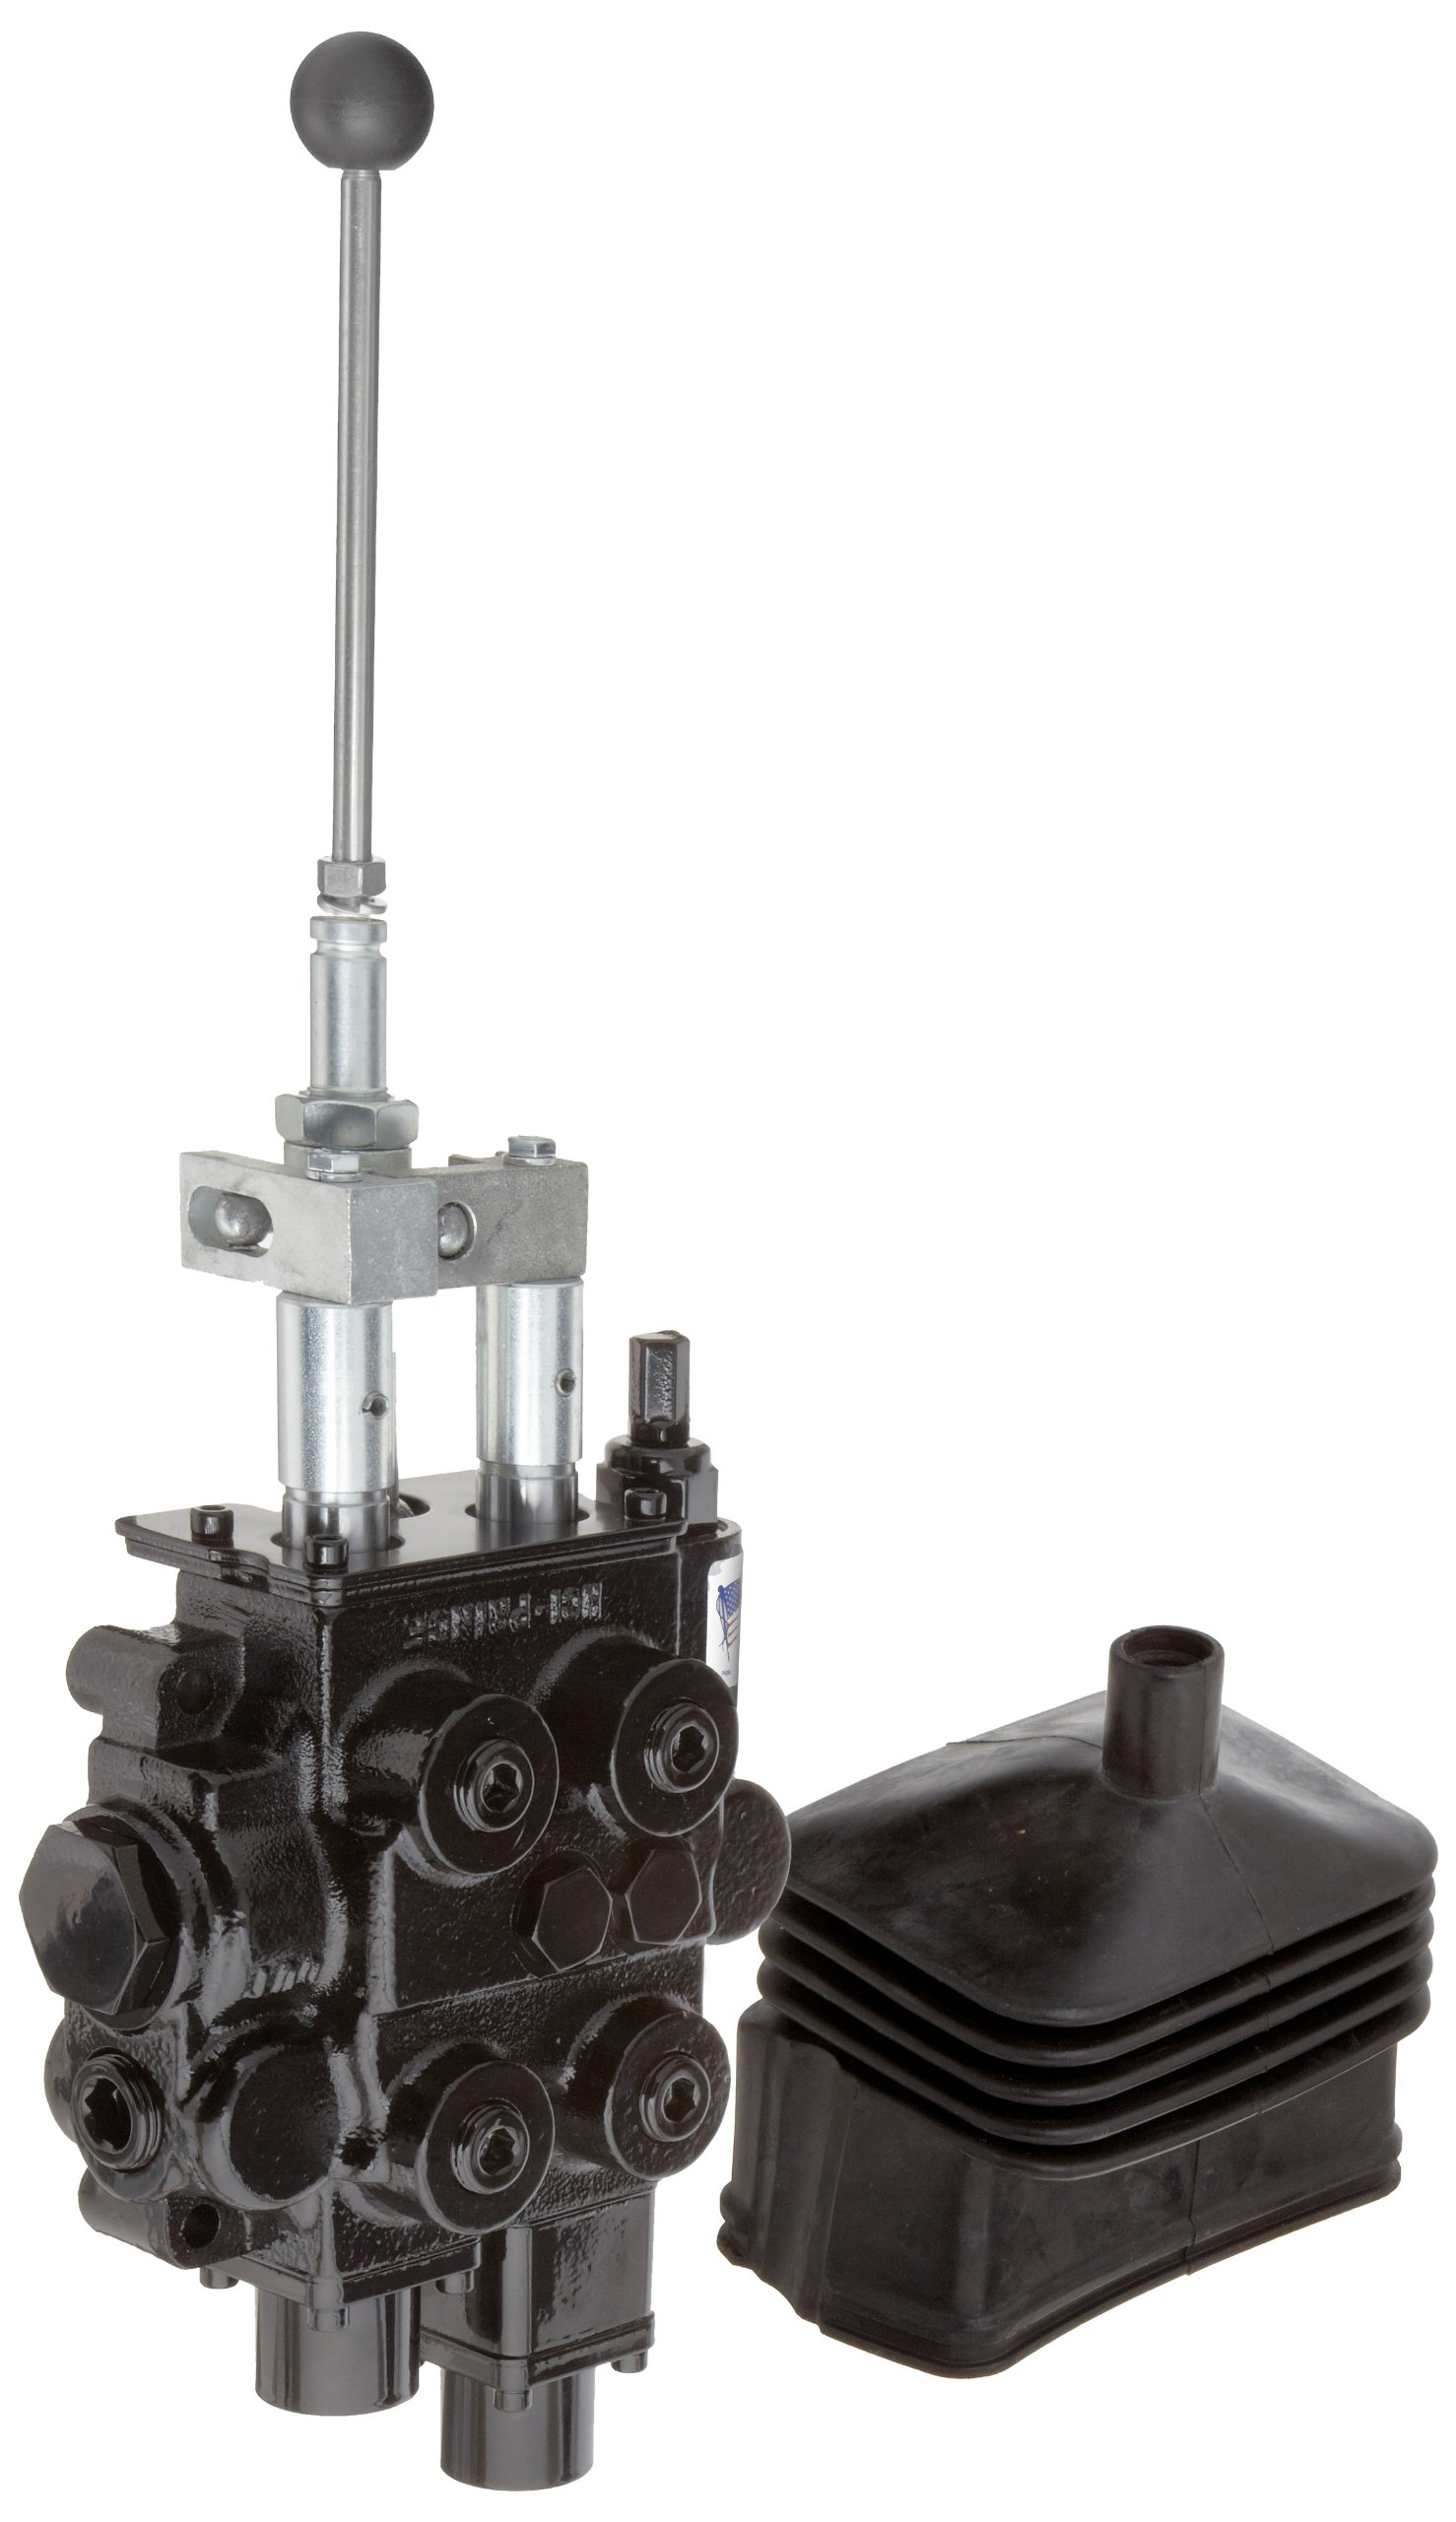 Prince RD522GCGA5A4B6 Directional Control Valve, Monoblock, Cast Iron, 2 Spool, Spool1: 4 Ways, 4 Positions, Spool 2: 4 Ways, 3 Positions, Spool 1: Tandem, Float Spool, Spool2: Tandem, Spring Center, Detent In for Float Position, Spring Center, Joystick H